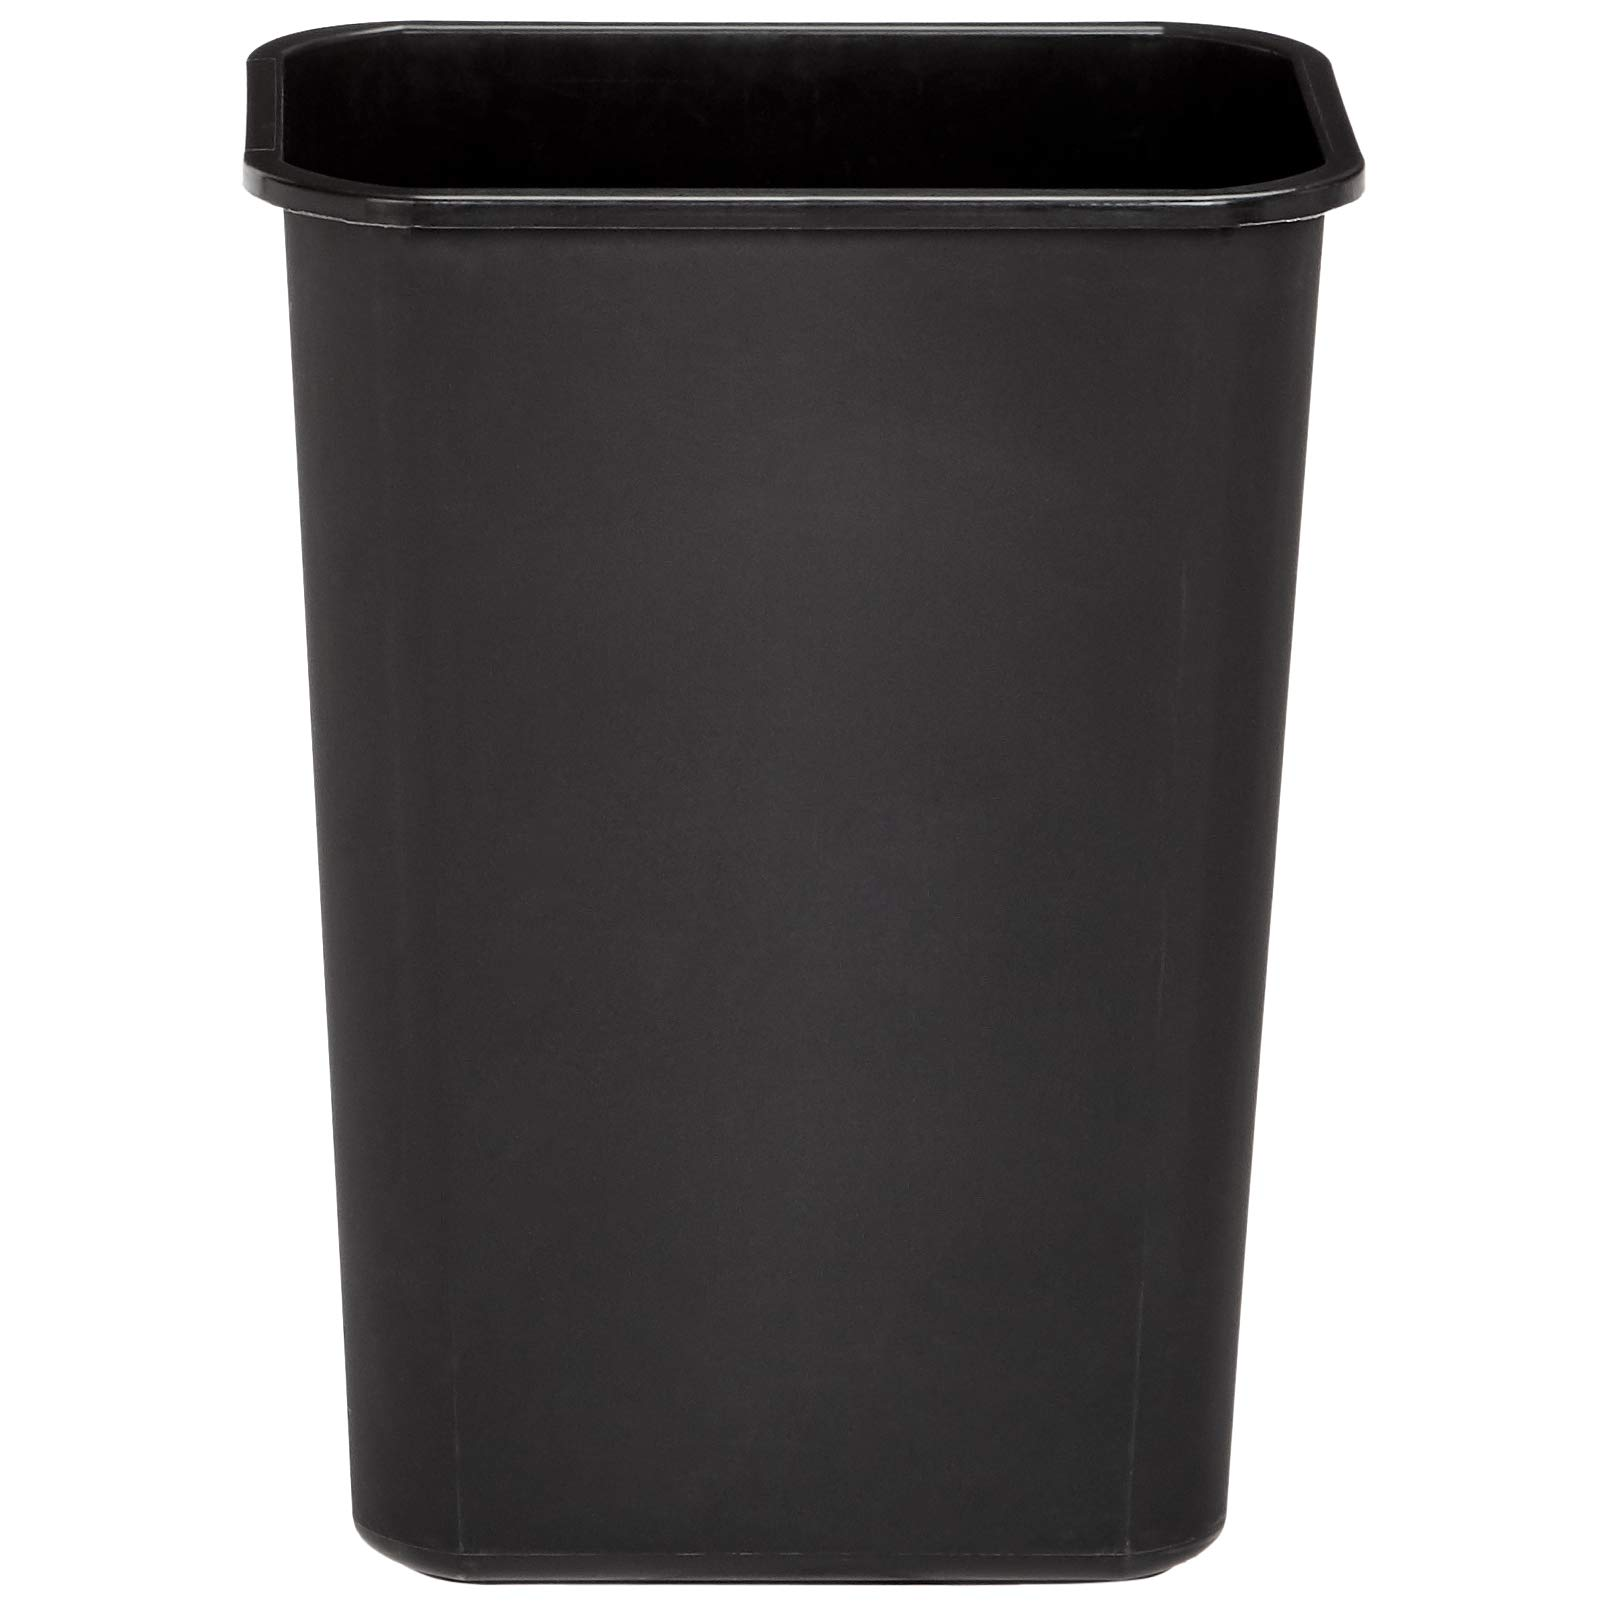 AmazonBasics 10 Gallon Commercial Waste Basket, Black, 12-Pack - WMG-00037 by AmazonBasics (Image #4)